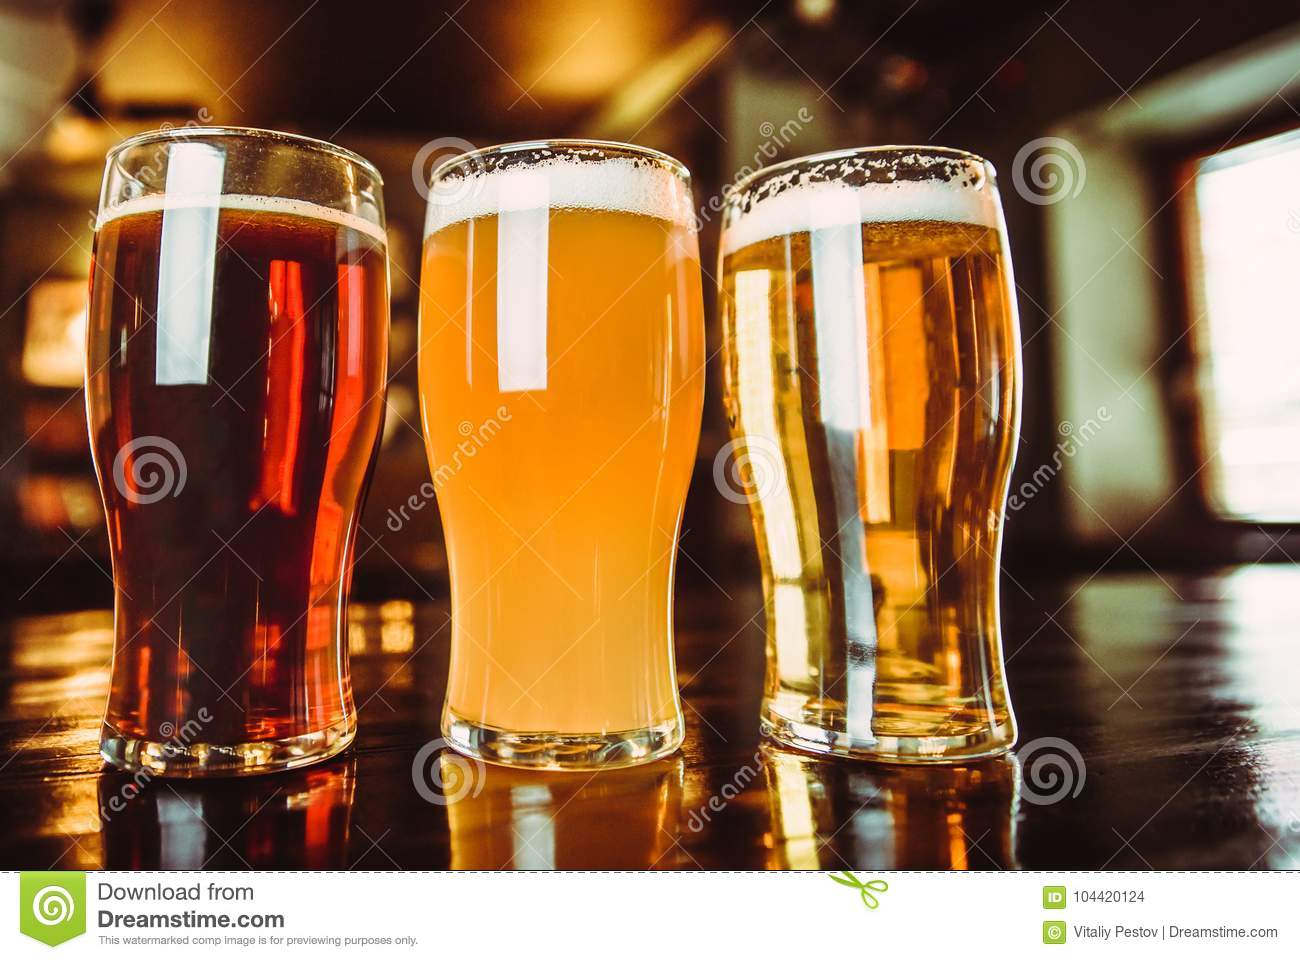 Glasses of light and dark beer on a pub background